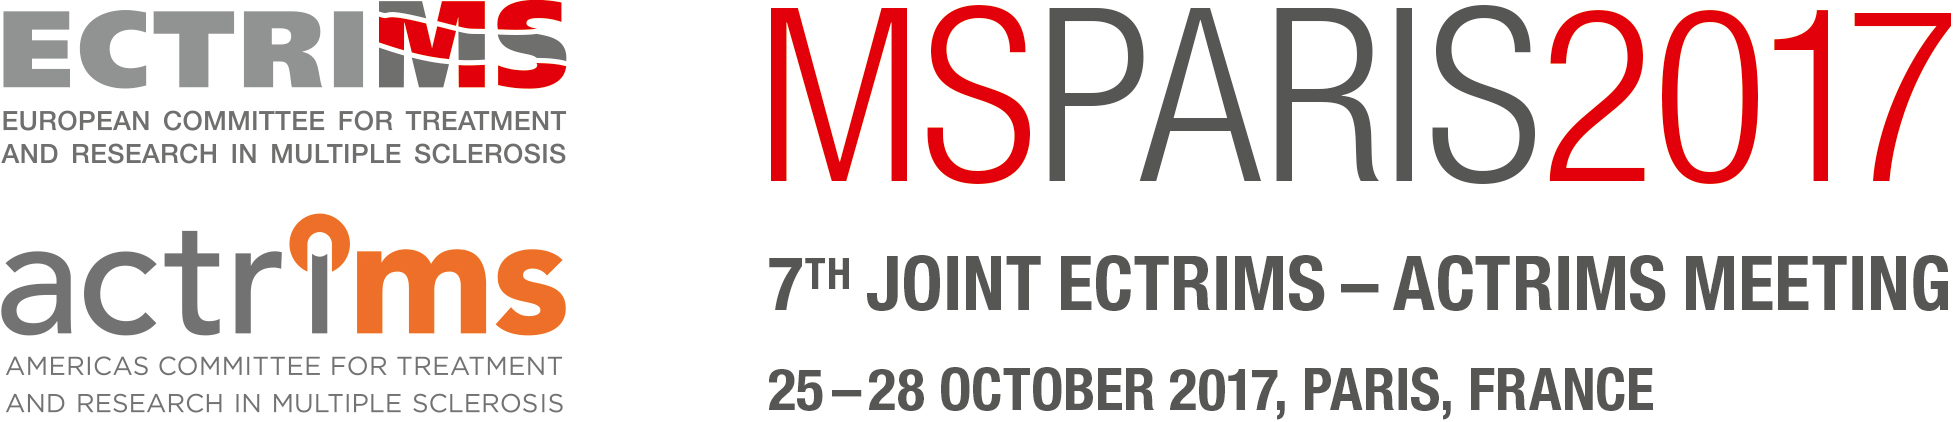 MSParis2017 - 7th Joint ECTRIMS - ACTRIMS Meeting